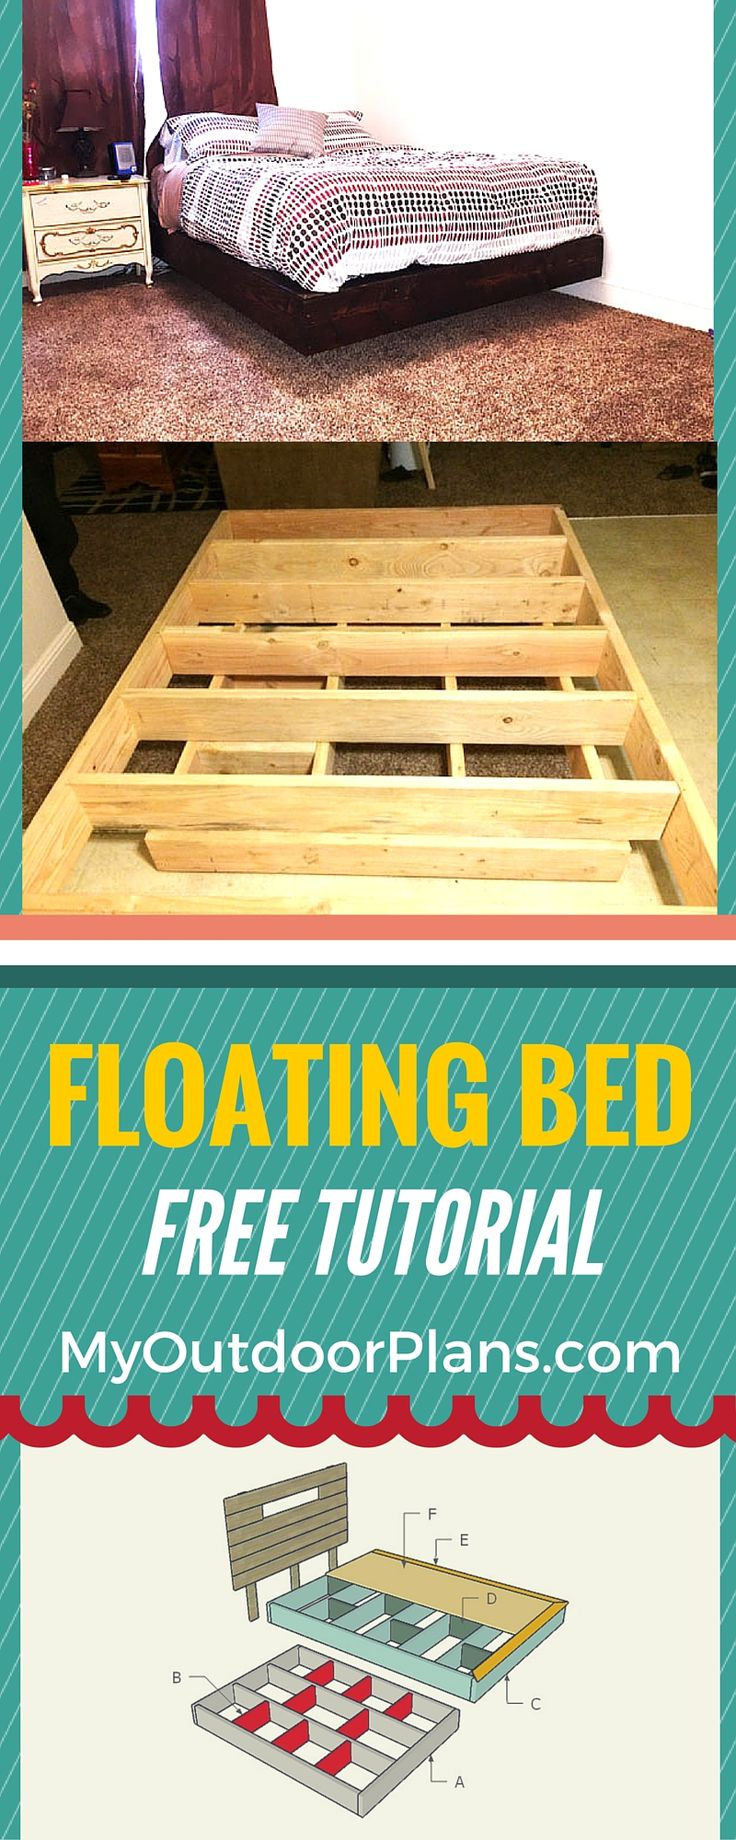 How to build a floating bed - Step by step plans for you to build a floating bed frame from common materials and using basic tools! #bedframe #diy #woodworking